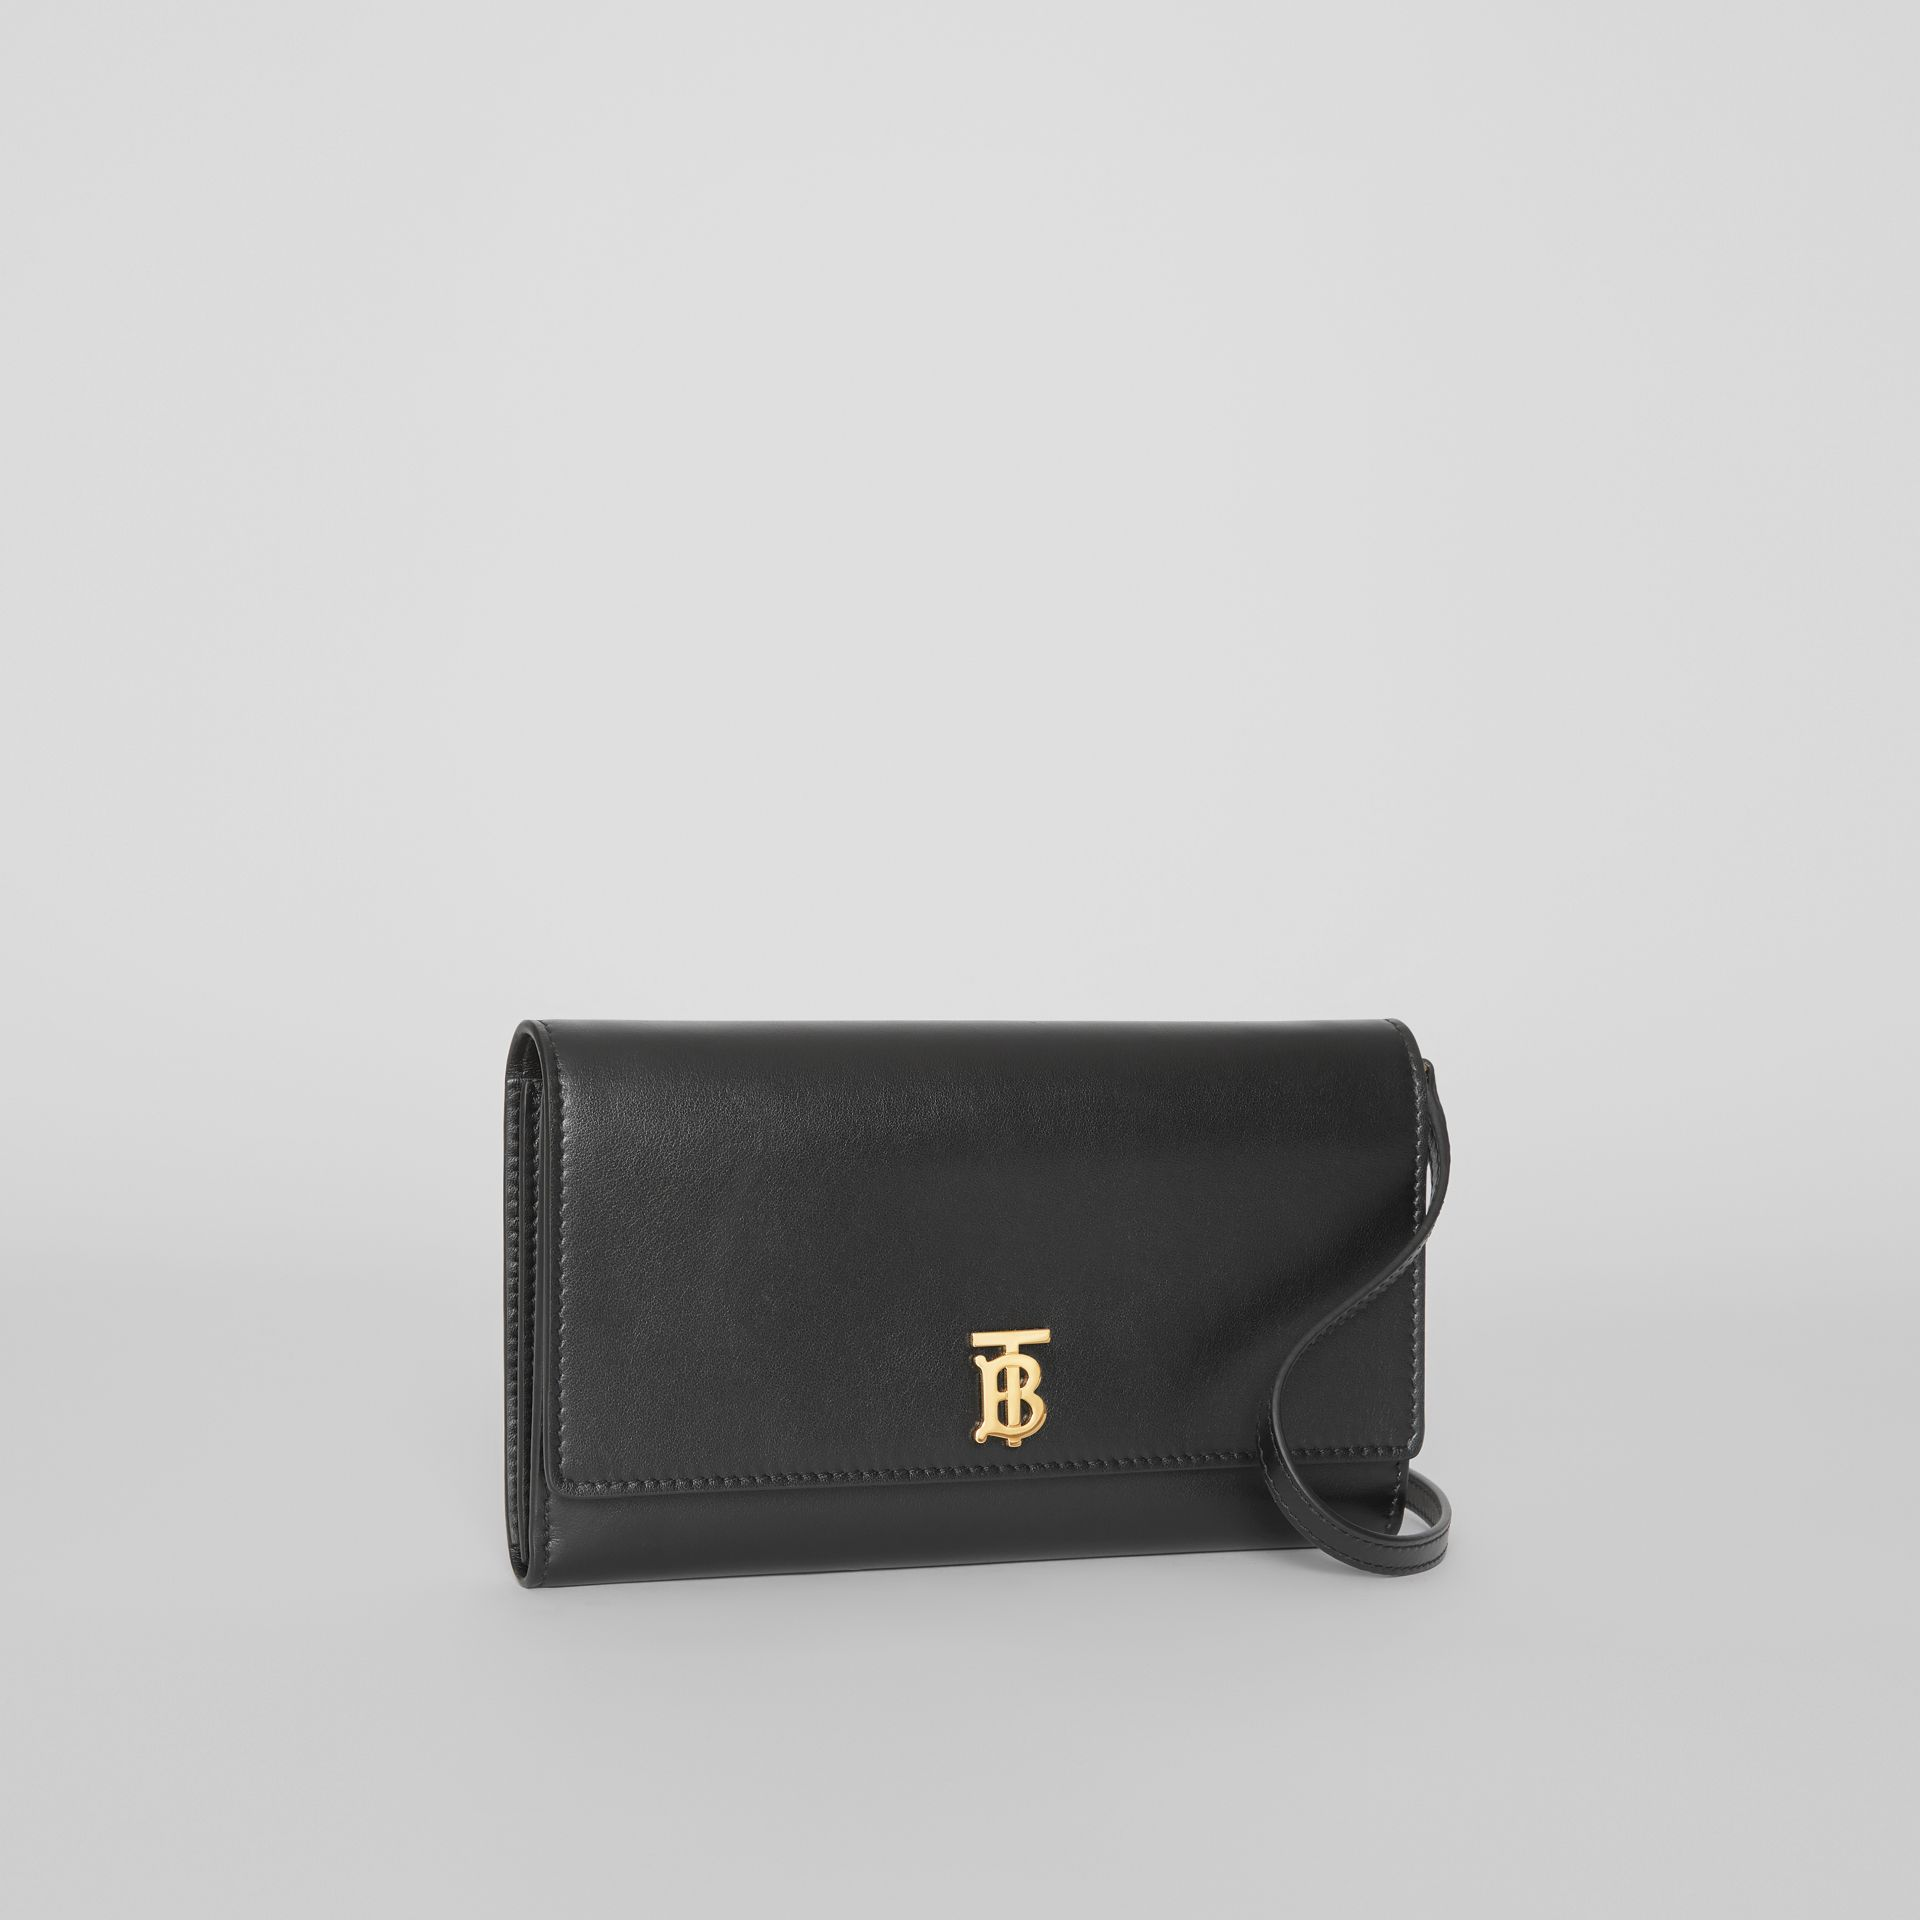 Monogram Motif Leather Wallet with Detachable Strap in Black - Women | Burberry Australia - gallery image 7